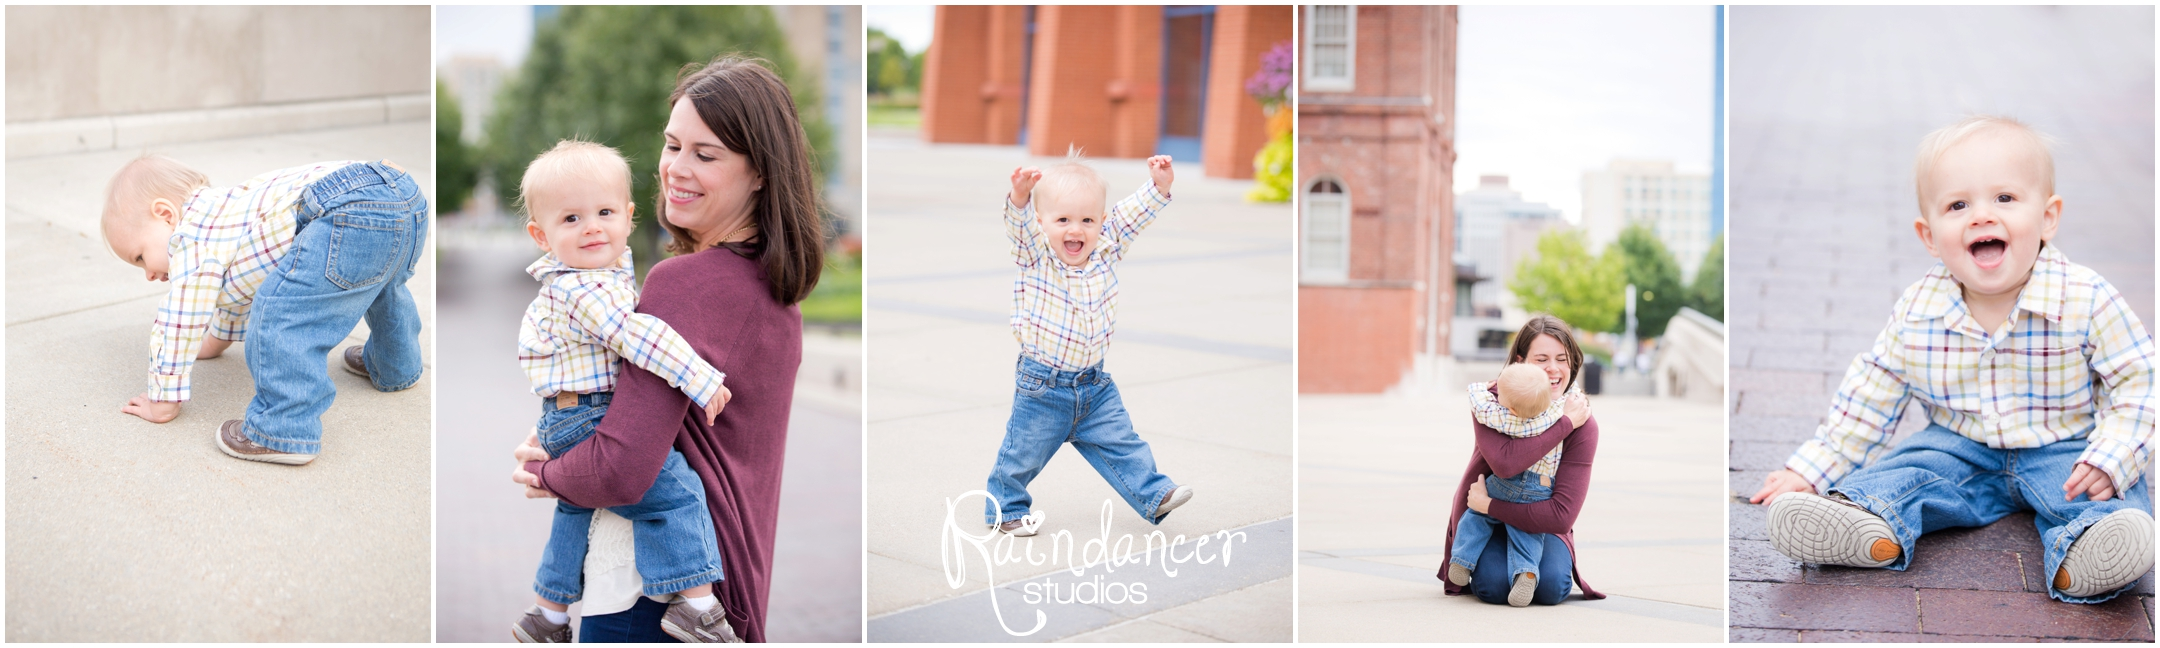 Indianapolis Family Photographer, Indianapolis family photography, Indy family photographer, Indy family photography, Indy children photographer, Indianapolis children photographer